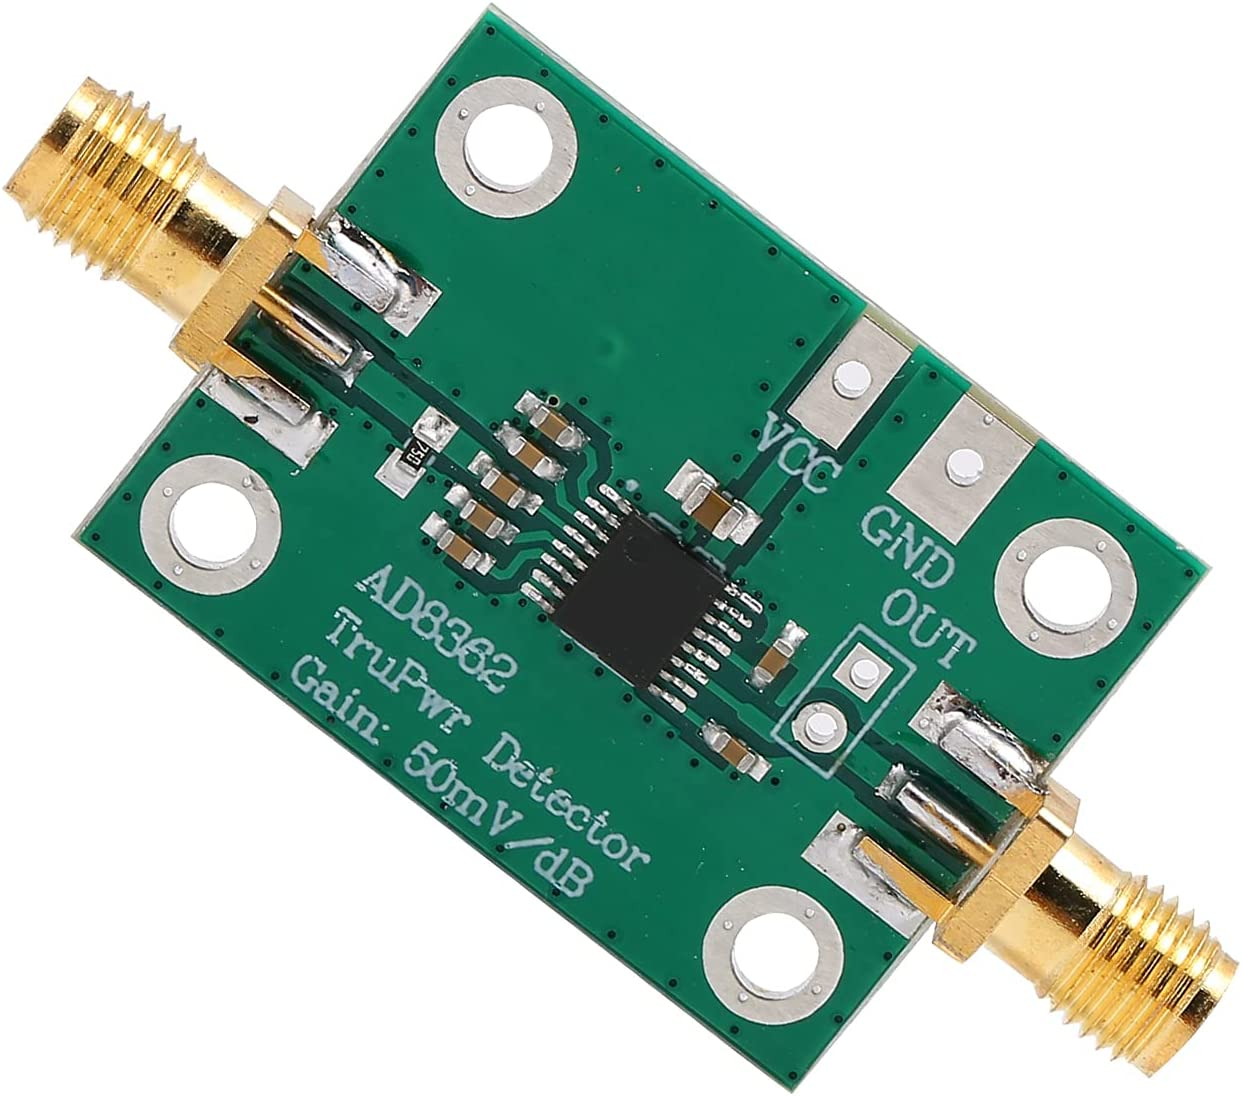 SALUTUY Logarithmic Detector Max 82% OFF Module Easy Portable 35% OFF Use RF to Log